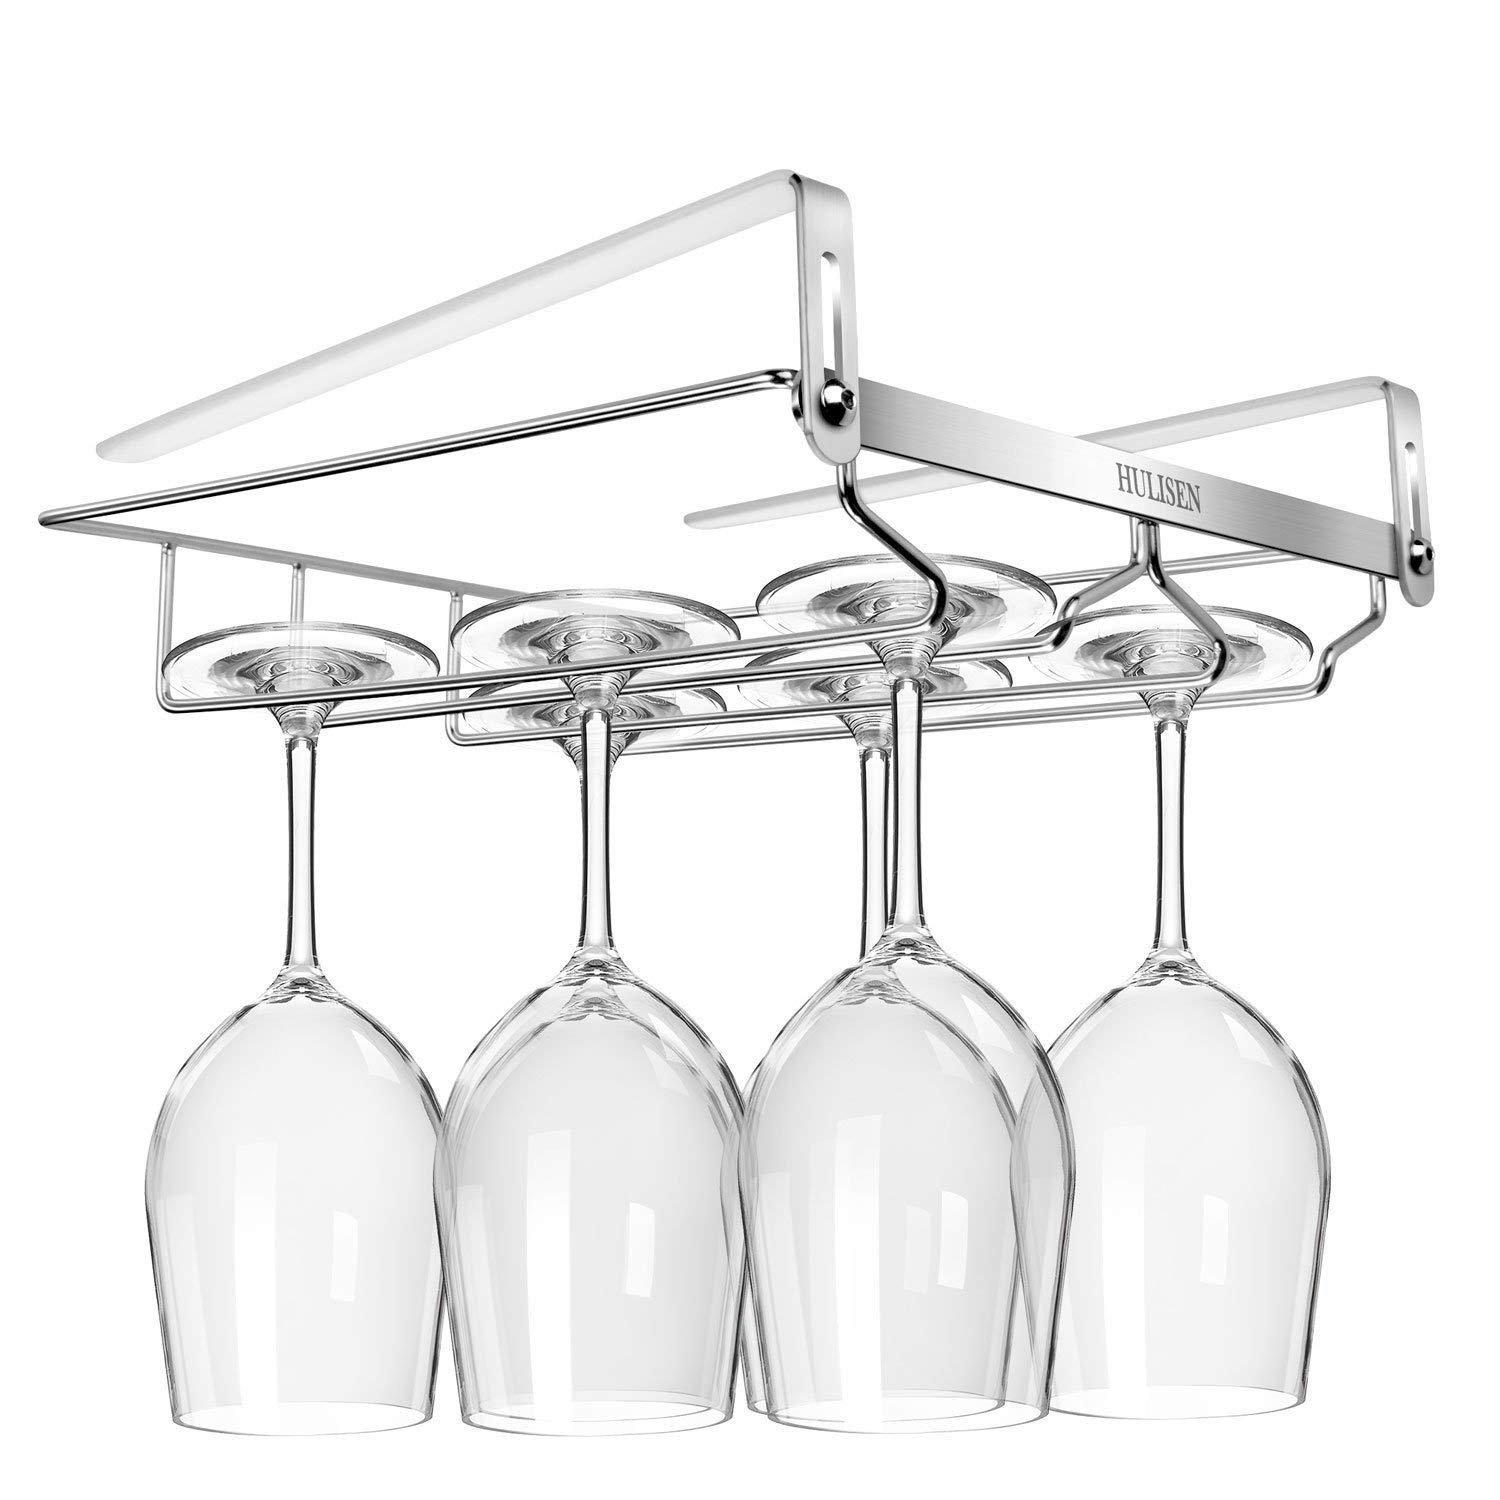 Improved Version Adjustable Wine Glass Holder, HULISEN No Drilling Required Stemware Rack, 2 Rows Stainless Steel Under Cabinet Wine Glass Rack